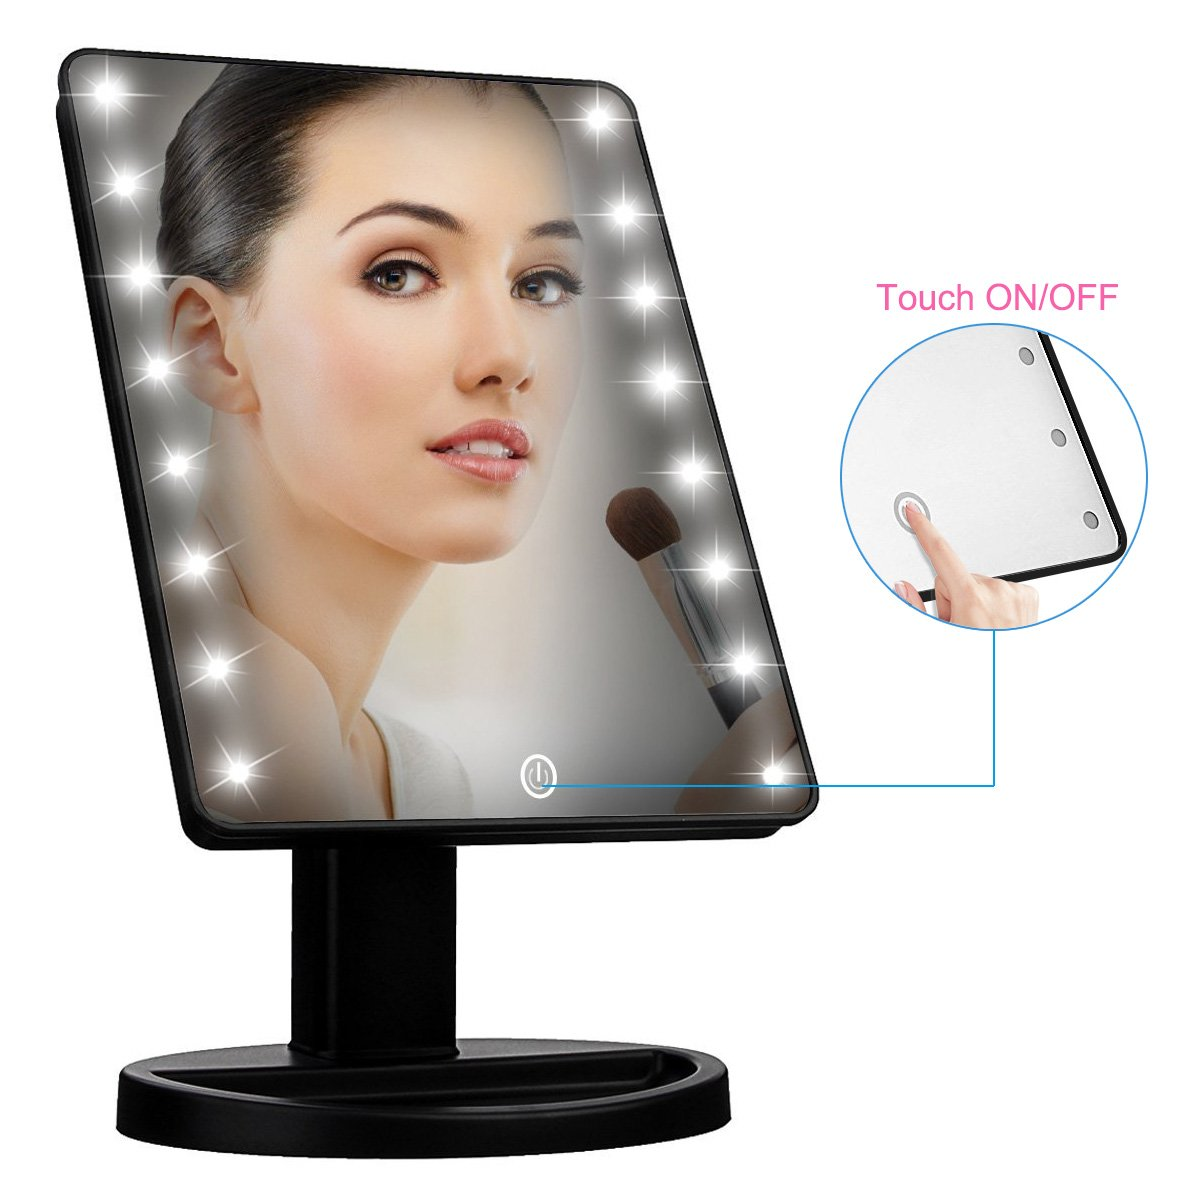 Lighted Makeup Mirror,Adjustable Natural Daylight Makeup Vanity Mirror with 16 LED lights Touch Screen Dimming,Room Decor Vanity Mirror for Women Family Valentines Lovers Teens Girls